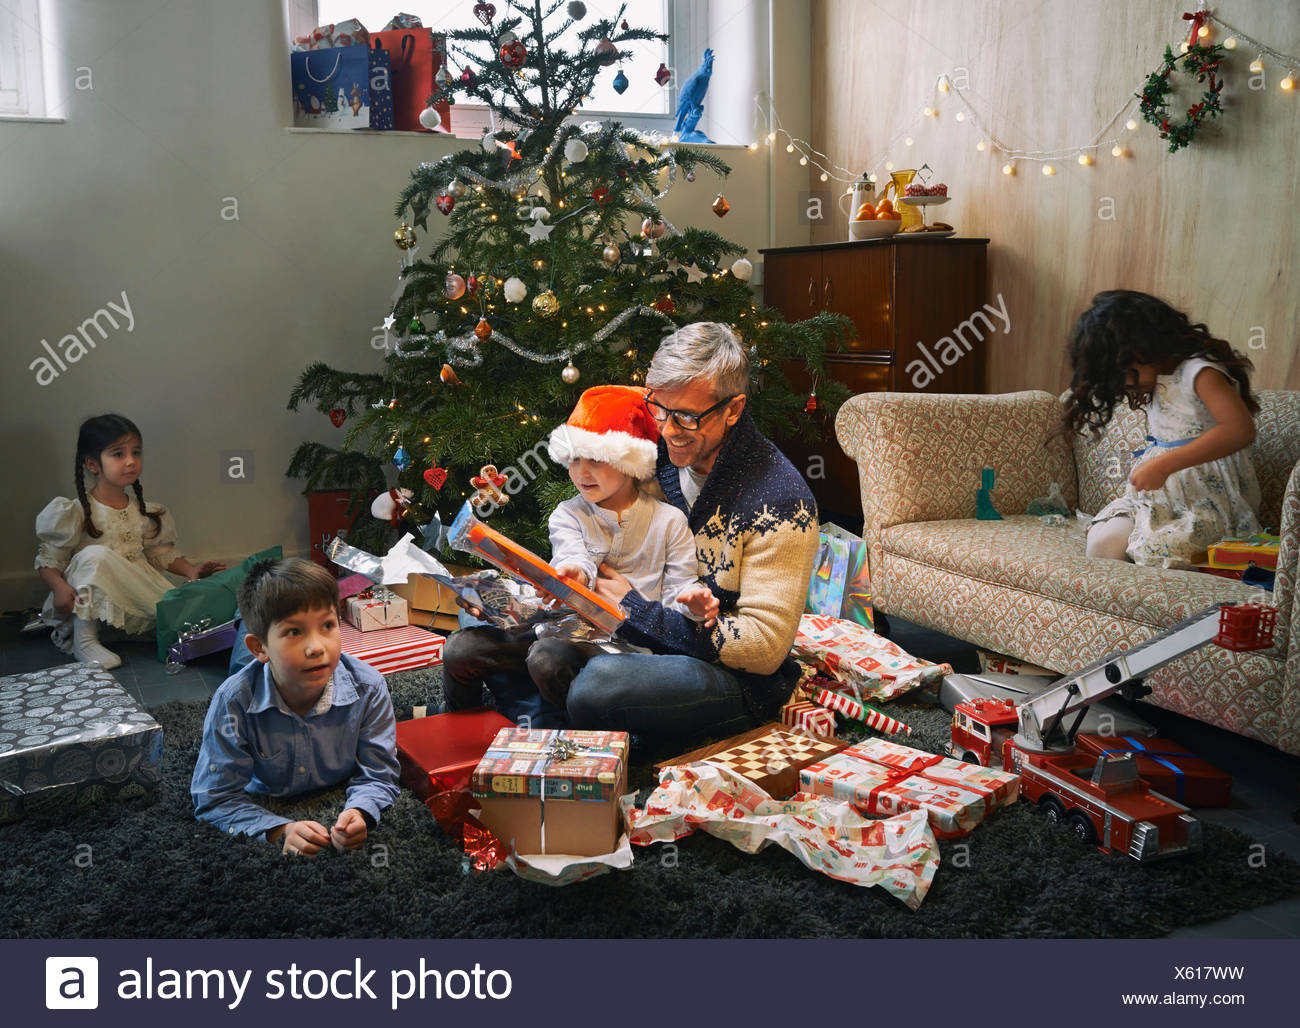 Father and four children opening christmas gifts in sitting room - Stock Image